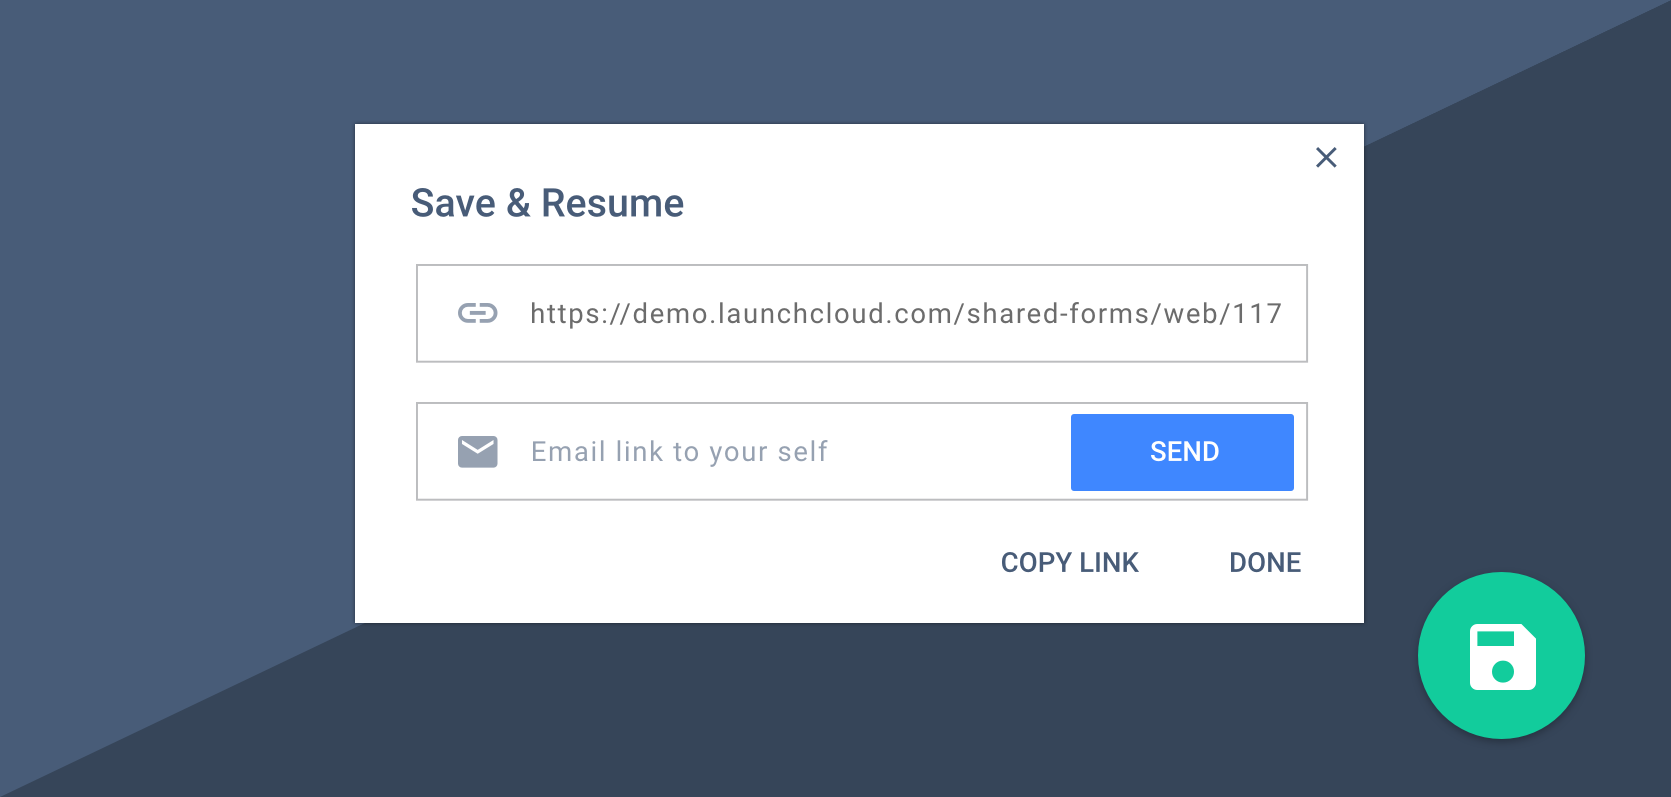 Save & Resume Feature